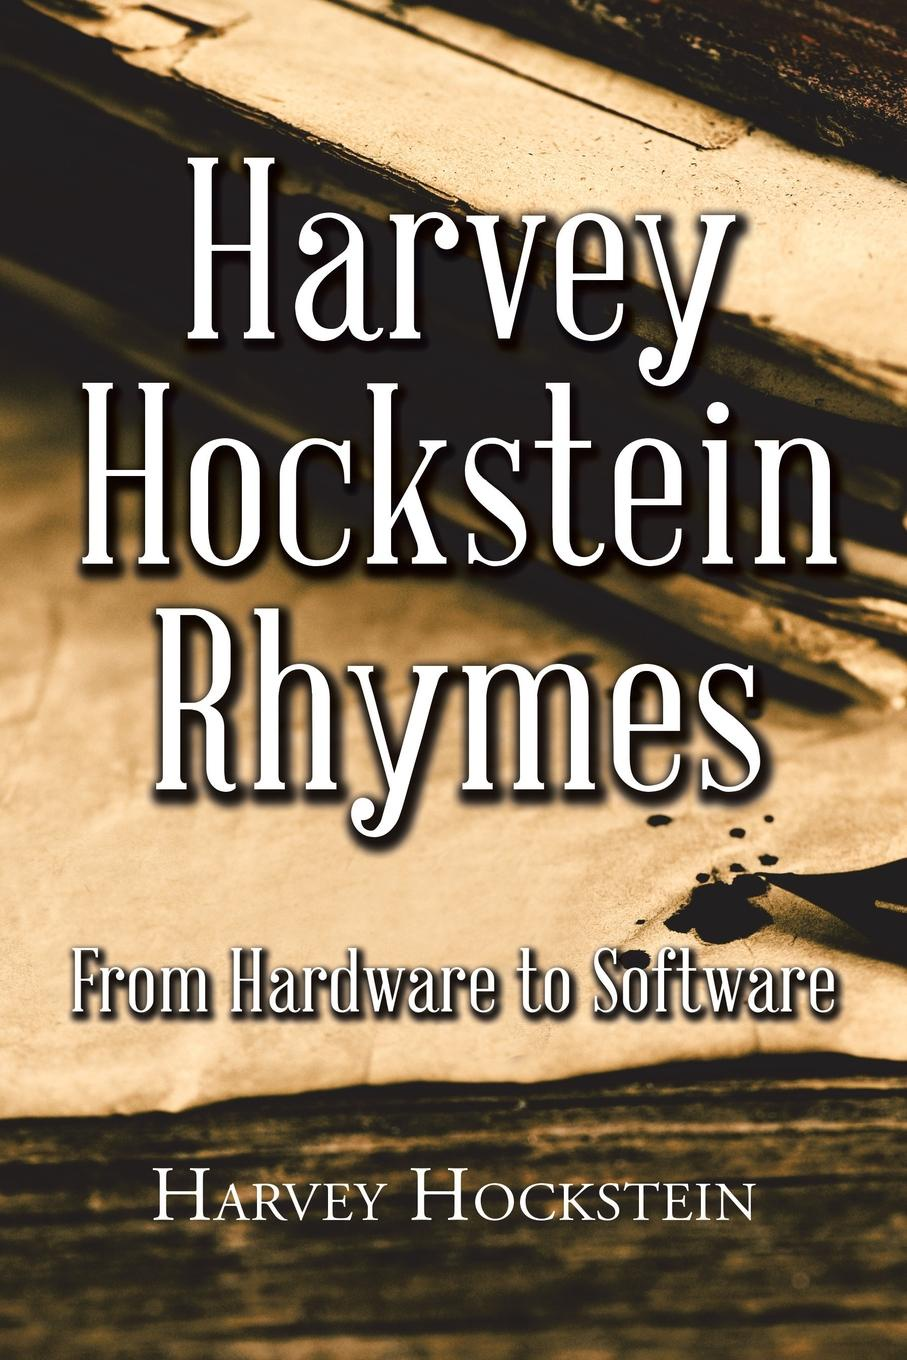 Harvey Hockstein Rhymes. From Hardware to Software